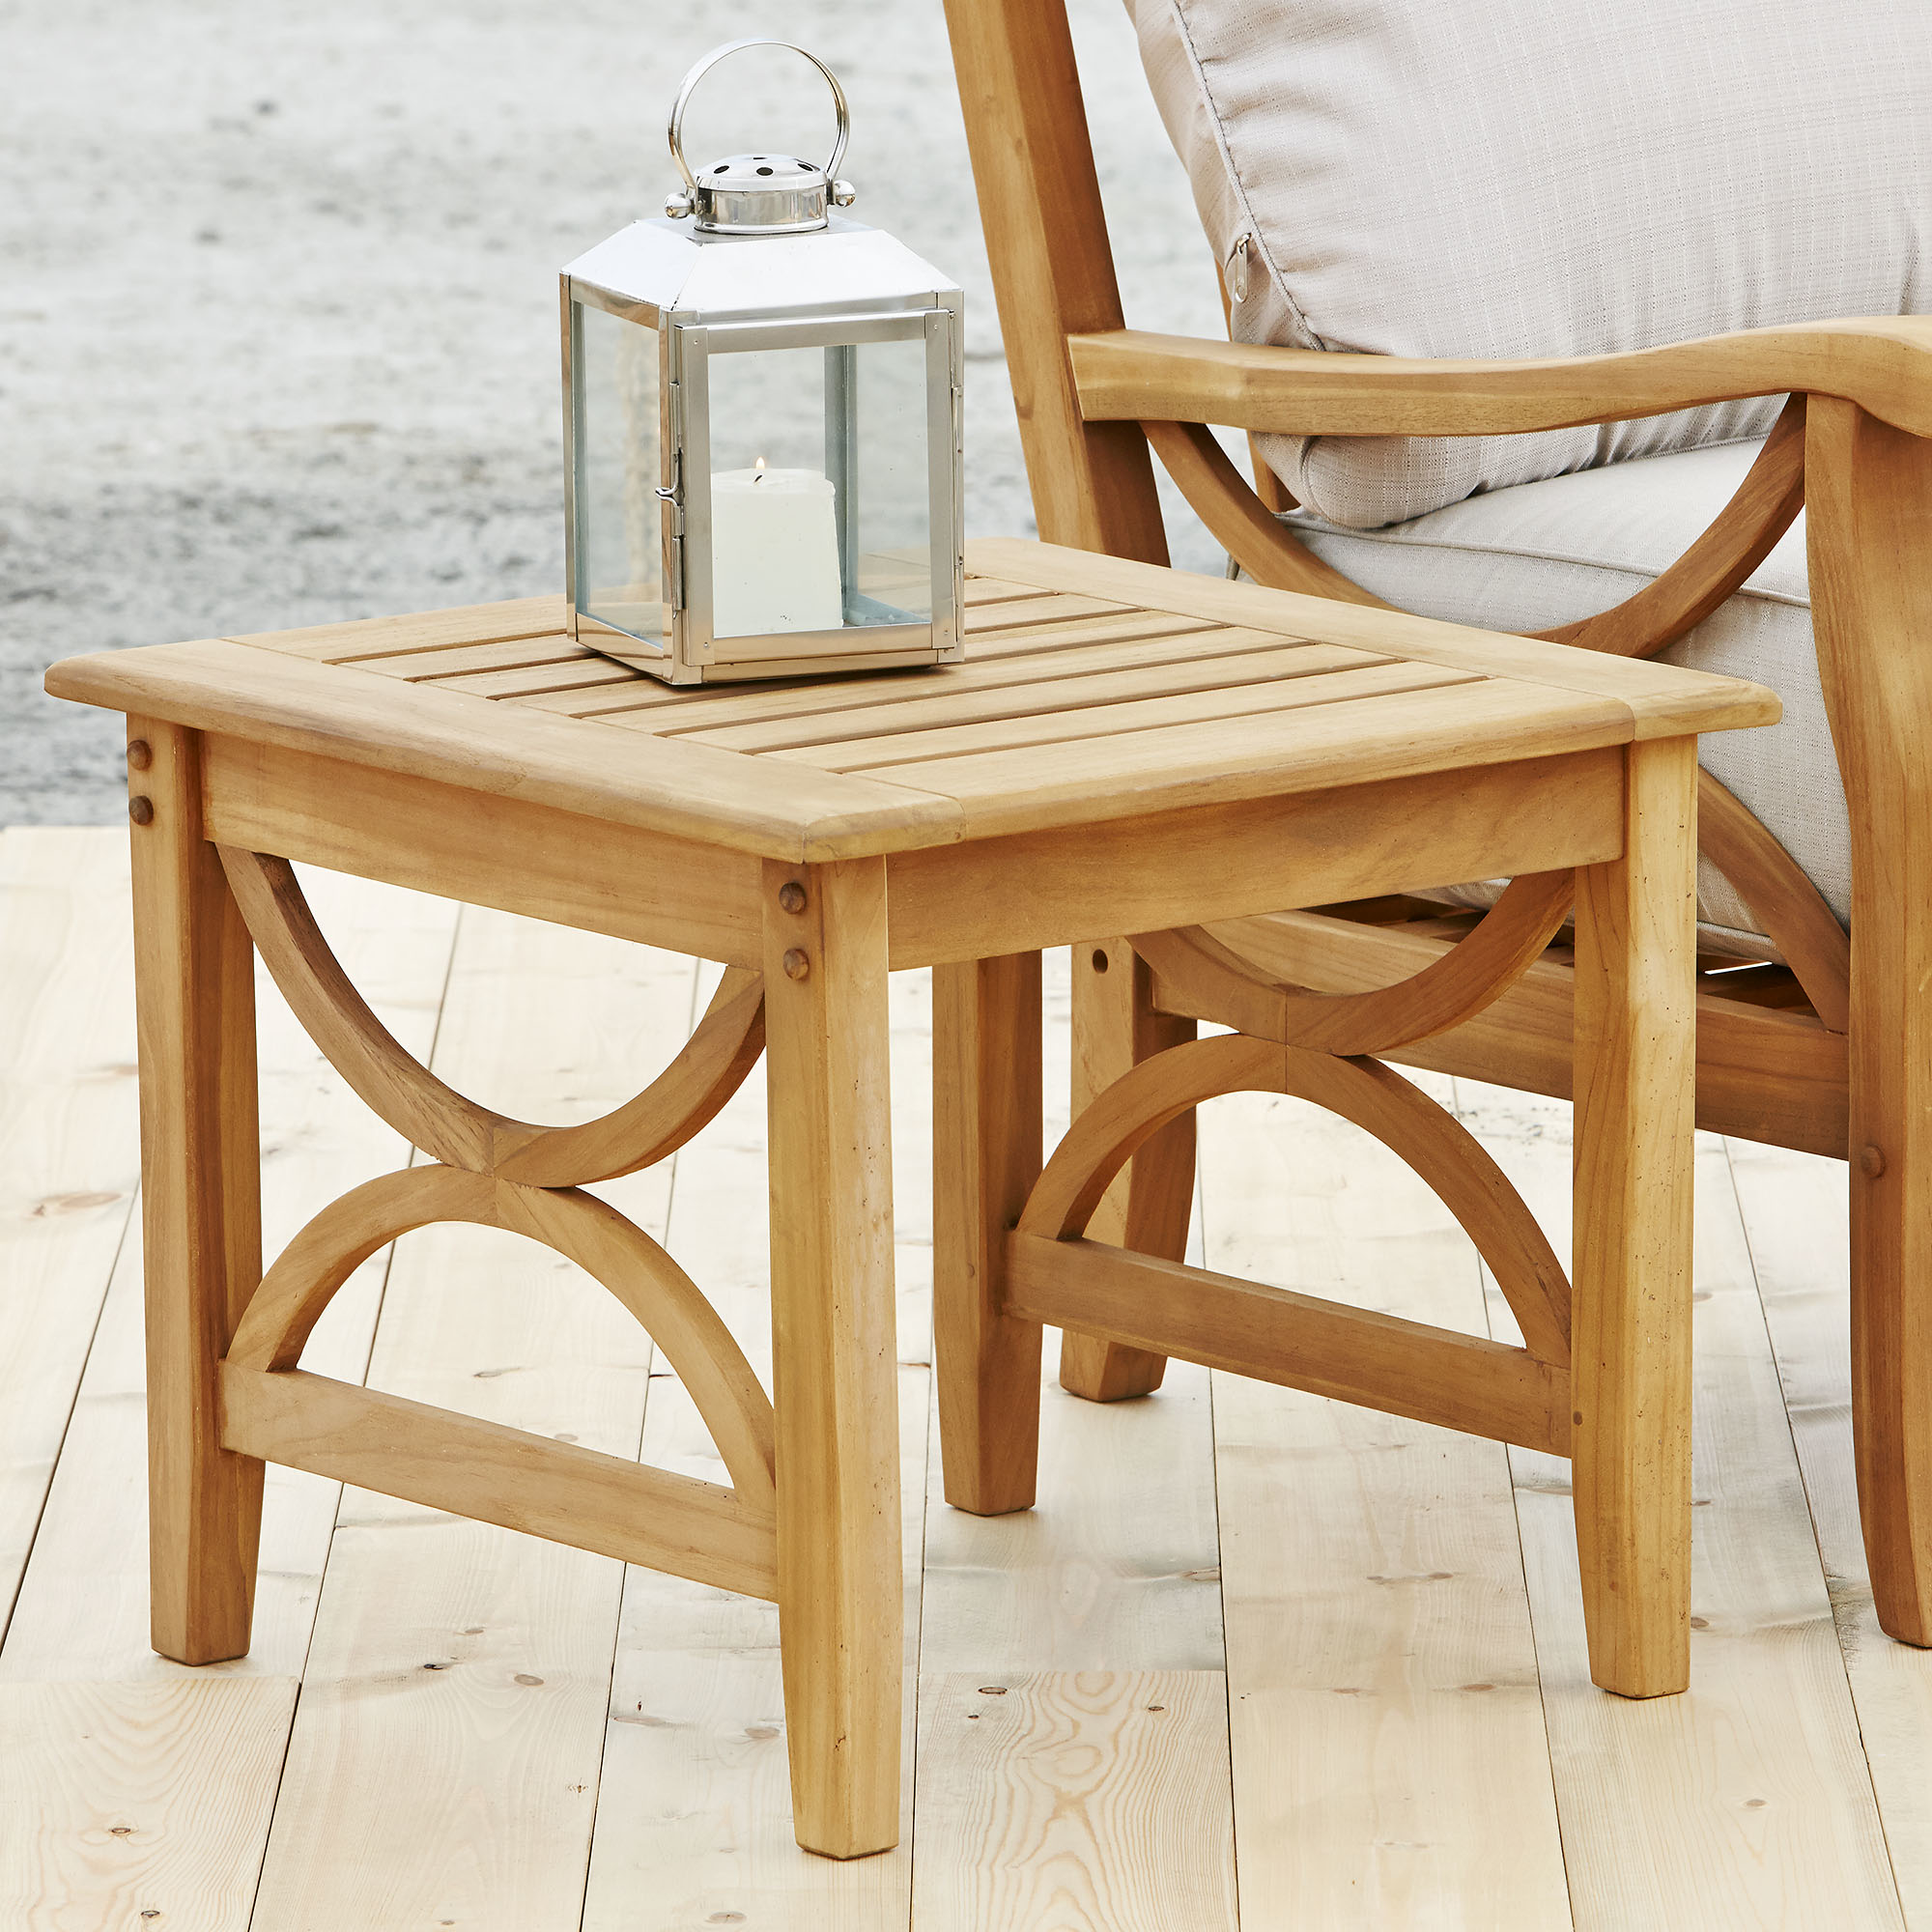 patio tables joss main default name outdoor side table orange sets clearance grey marble dining pier imports lamp design ikea wood easter tablecloths crib furniture mini crystal